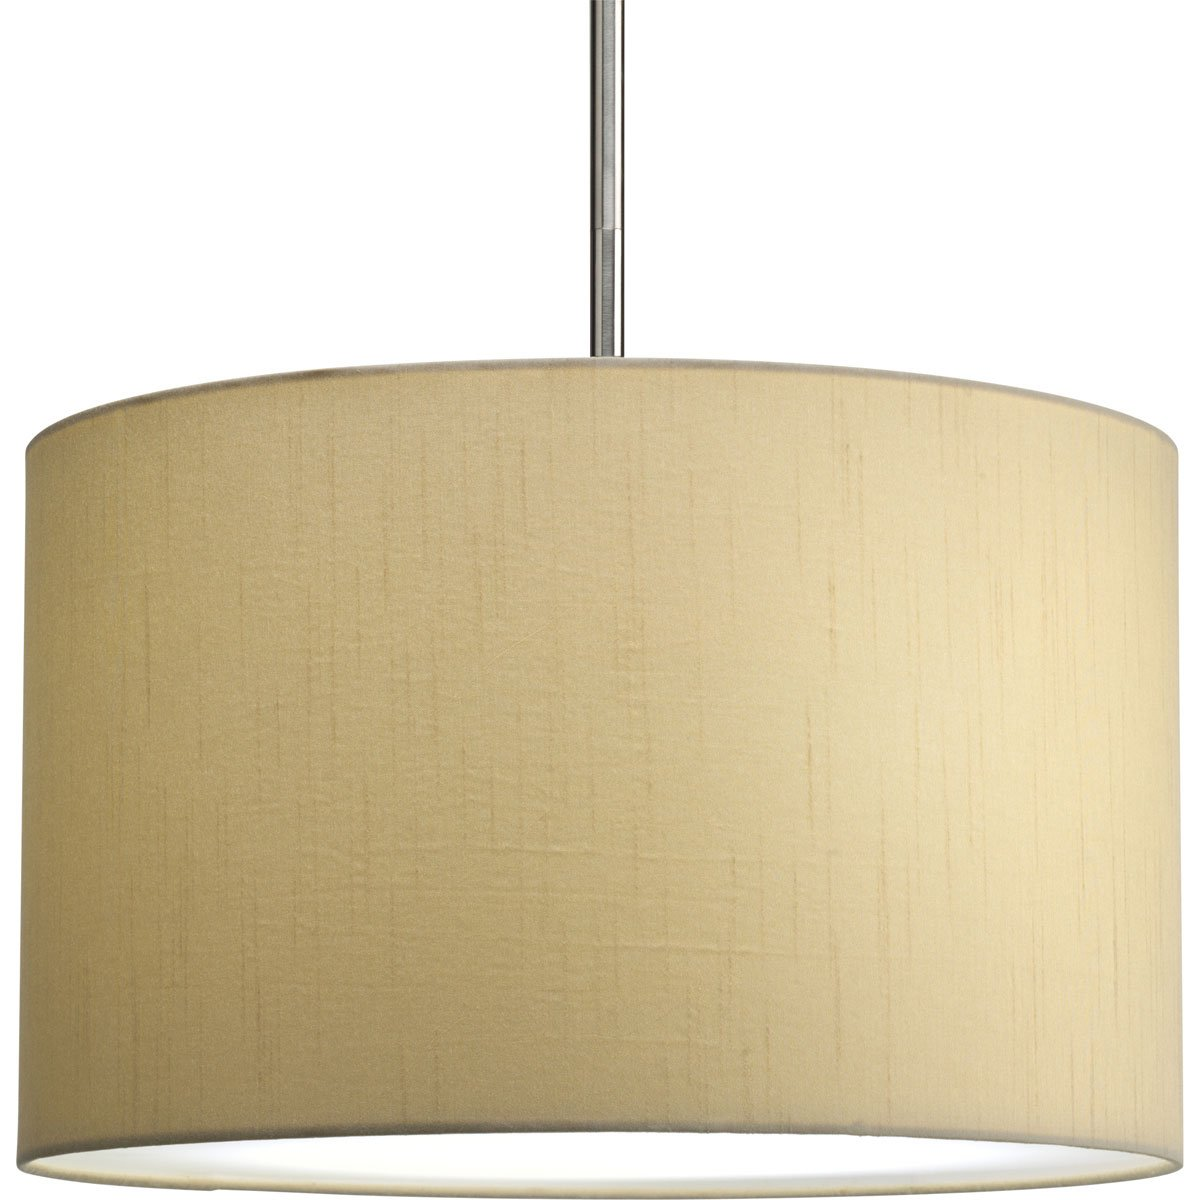 Progress lighting p8823 01 16 inch drum shade beige silken fabric progress lighting p8823 01 16 inch drum shade beige silken fabric with full modular pendant requires 1 light stem p5198 or 3 light stem p5199 to make mozeypictures